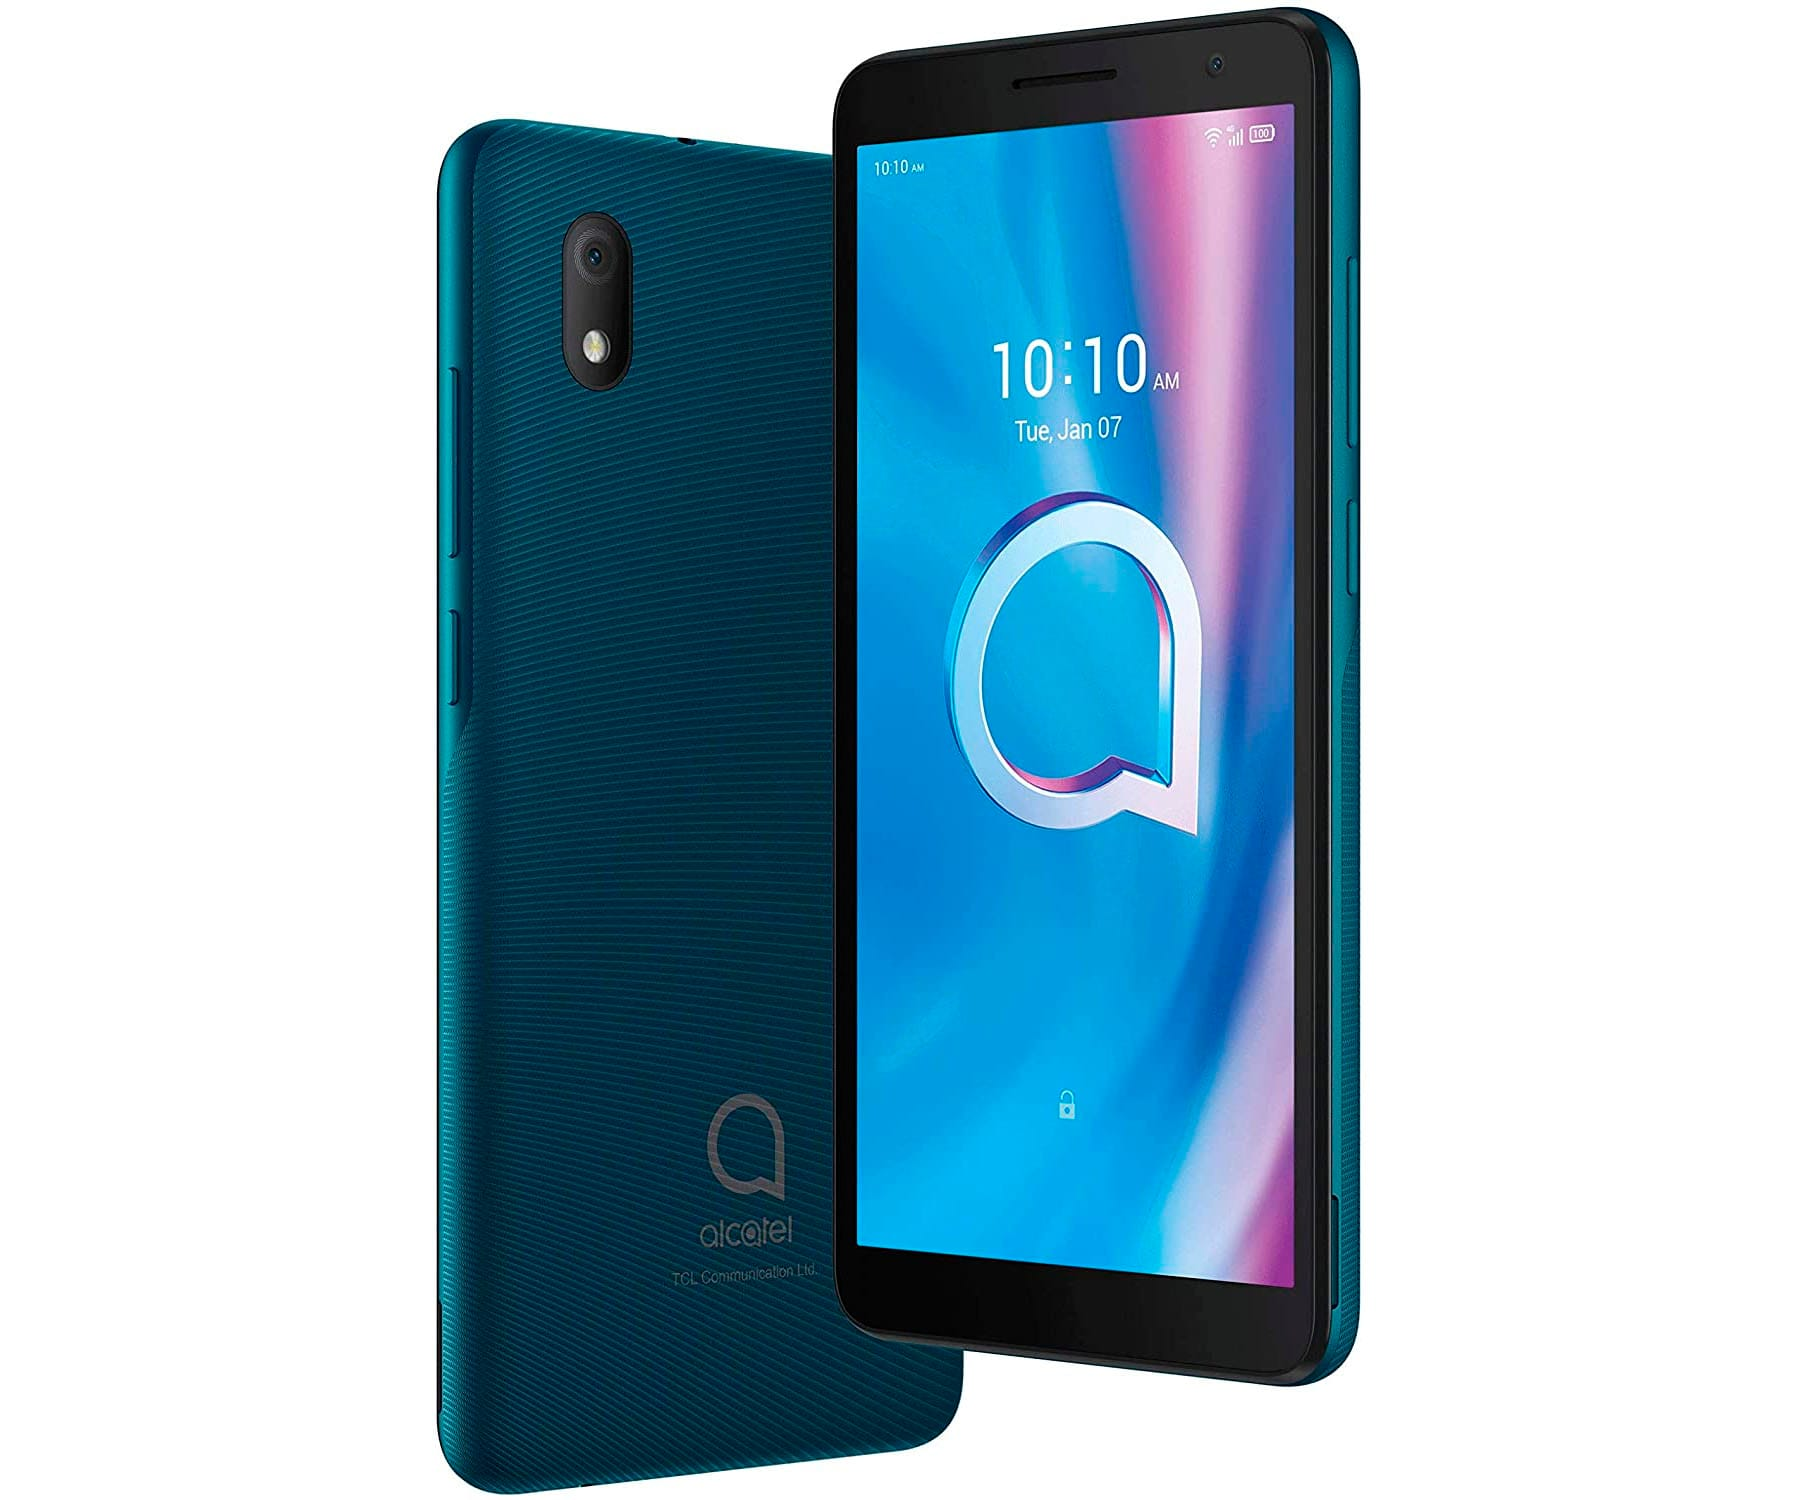 ALCATEL 1B VERDE PINO MÓVIL 4G DUAL SIM 5.5'' IPS HD+ QUADCORE 32GB 2GB RAM CAM 8MP SELFIES 5MP